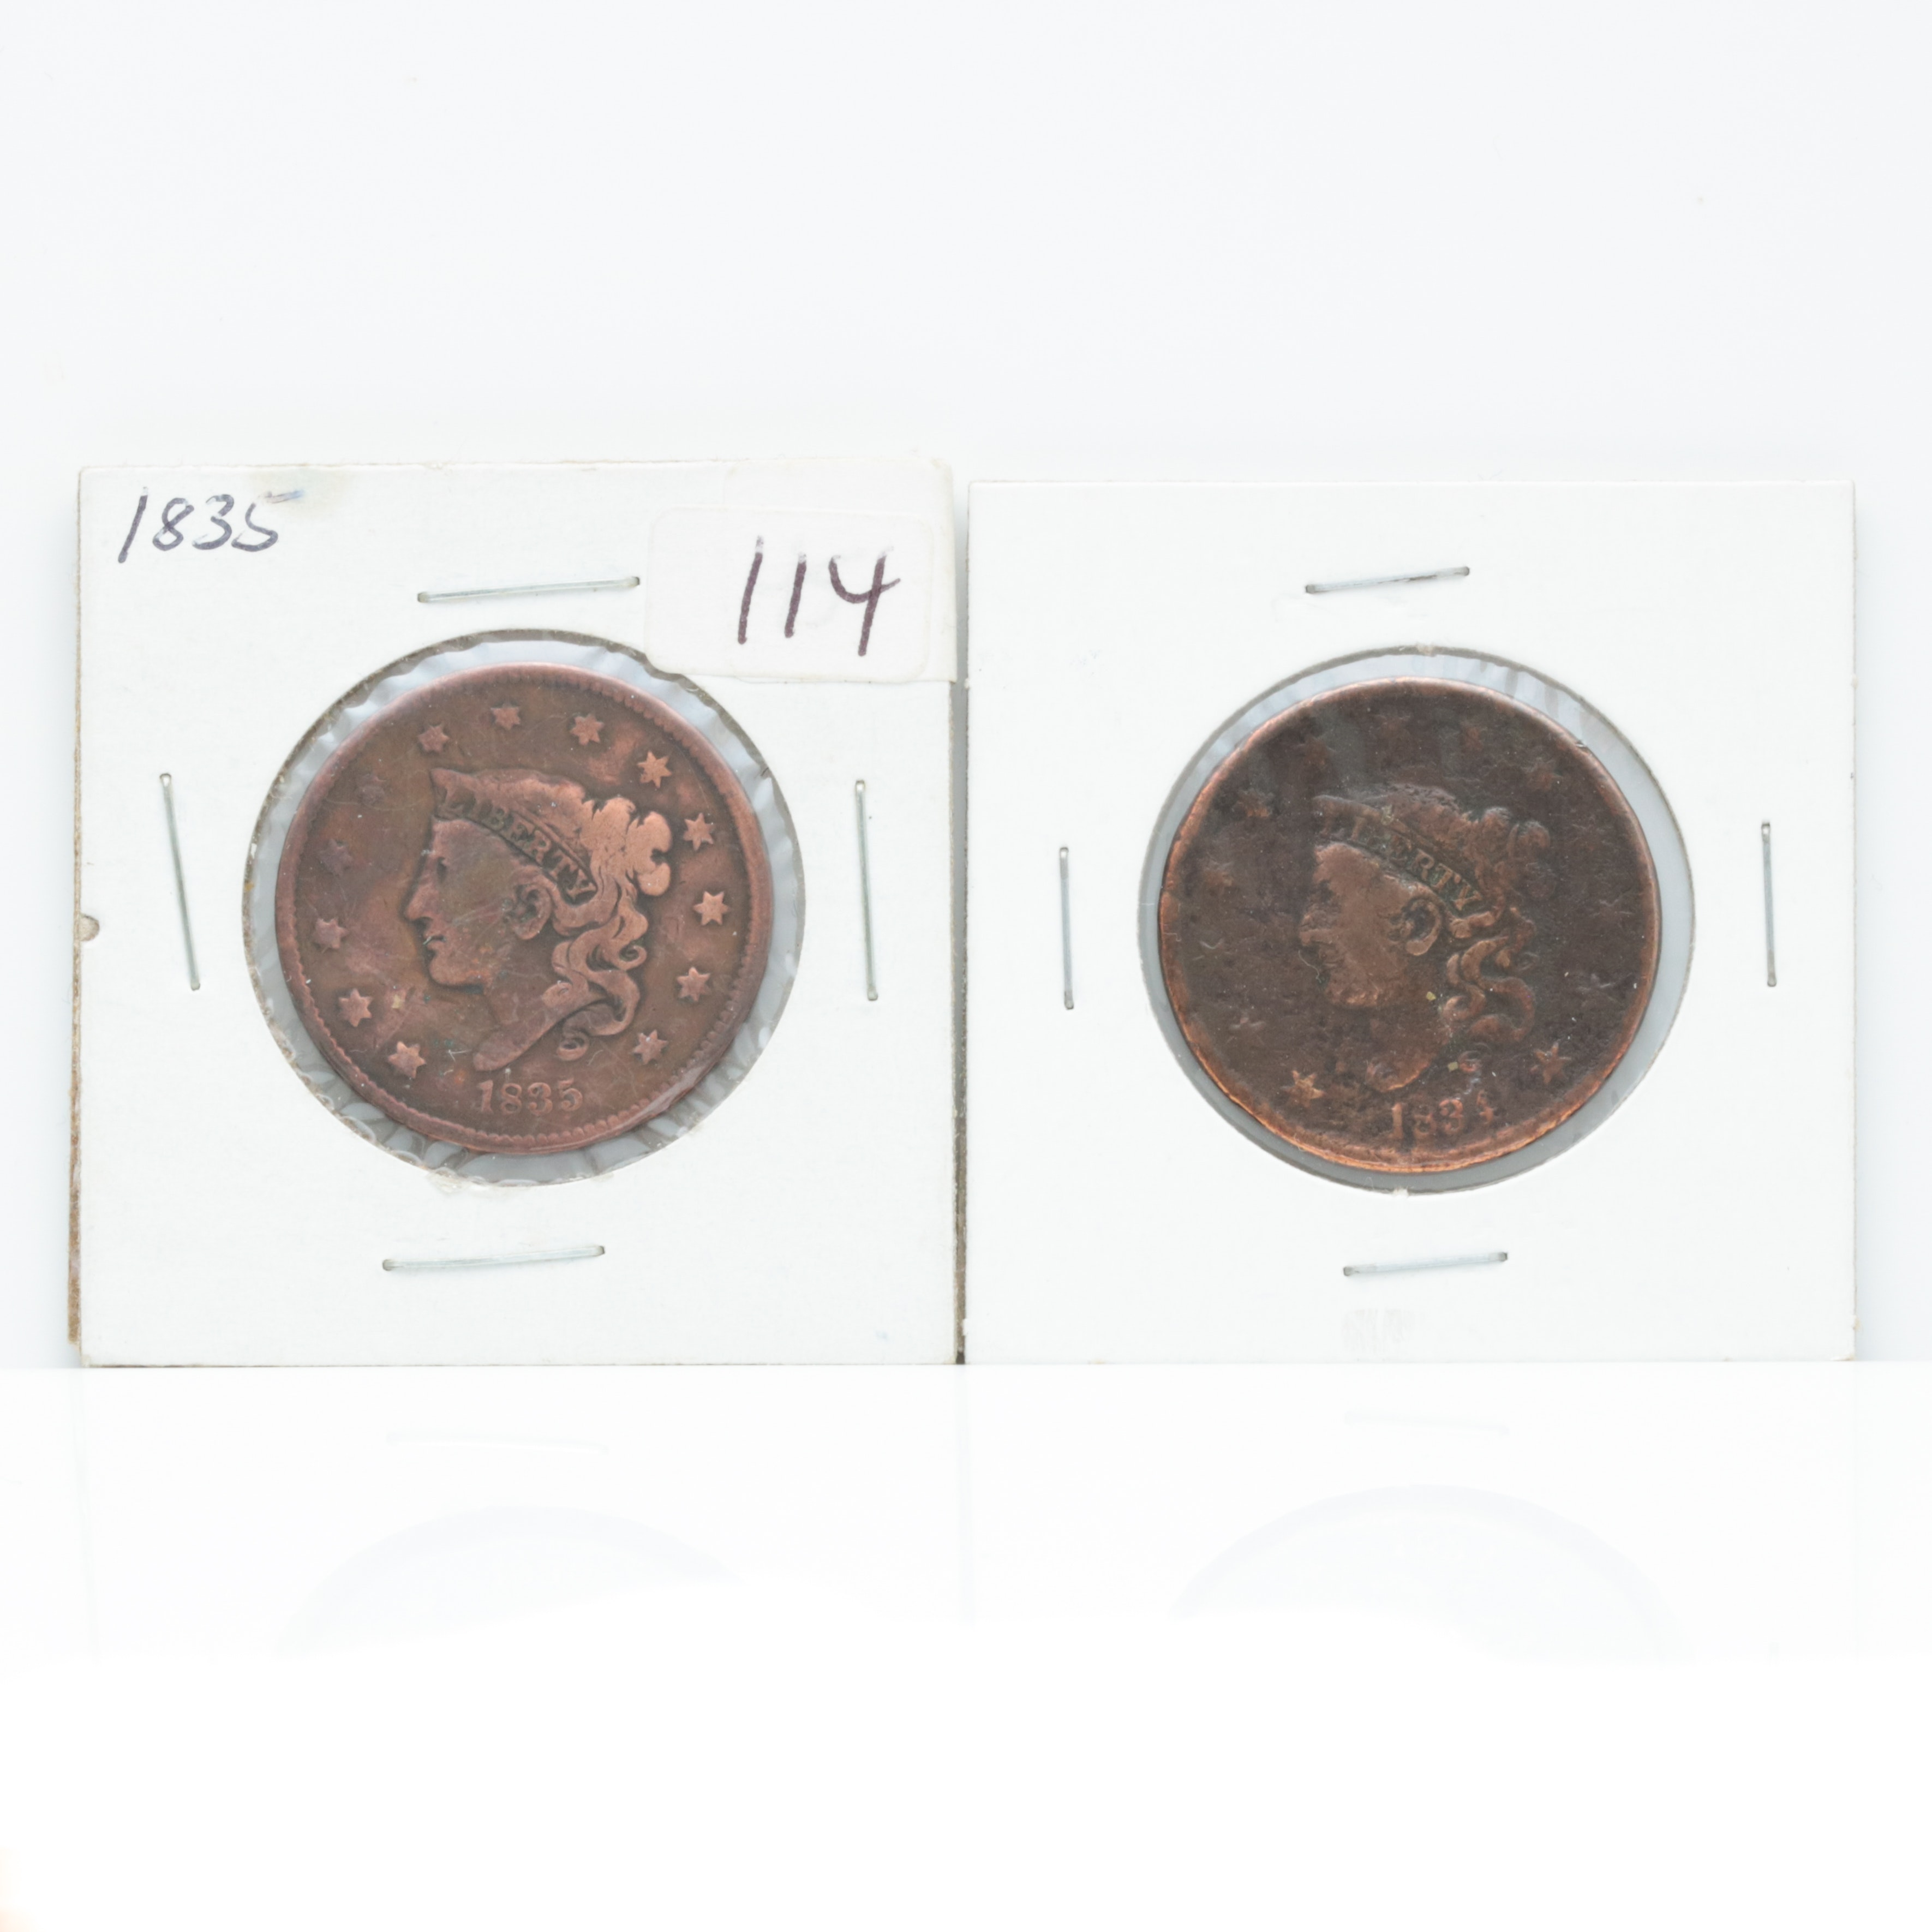 1834 and 1835 Coronet Head Large Cent Coins